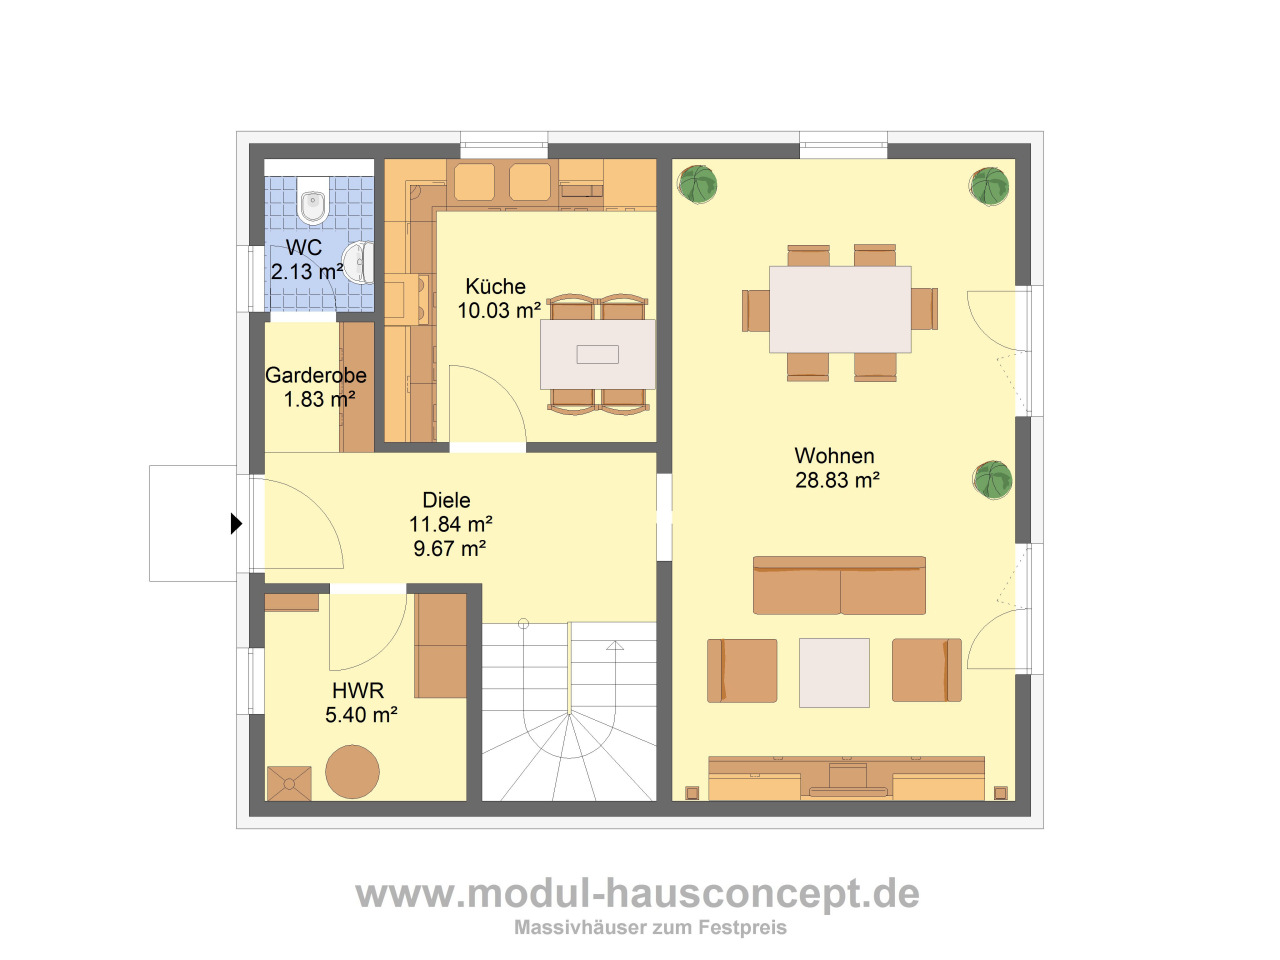 modul hausconcept stadtvillen. Black Bedroom Furniture Sets. Home Design Ideas